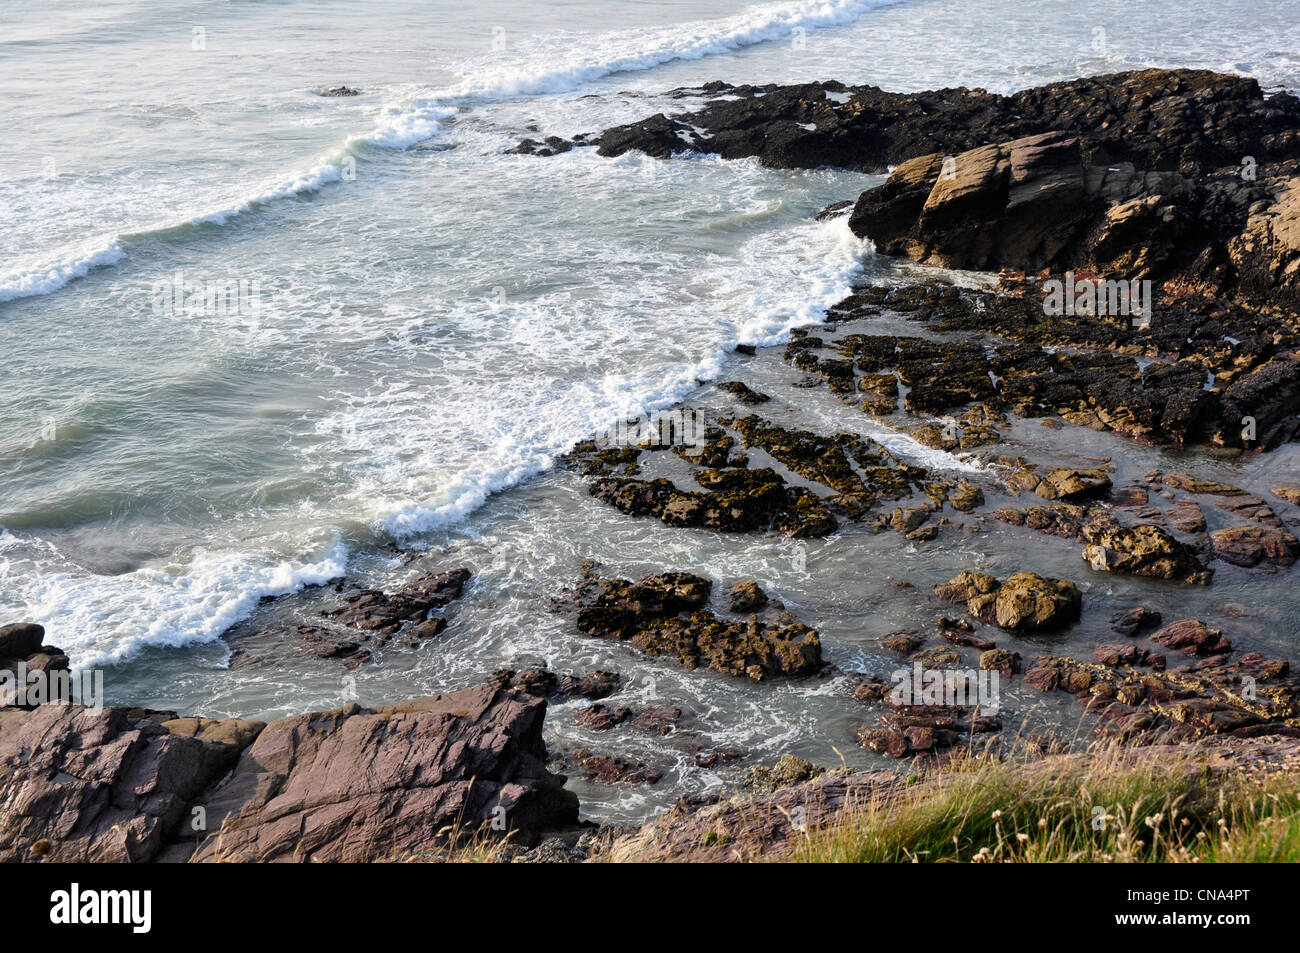 Cornwall - rocky beach and incoming tide - white flecked waves - seen from the cliff path at Polzeath - Stock Image